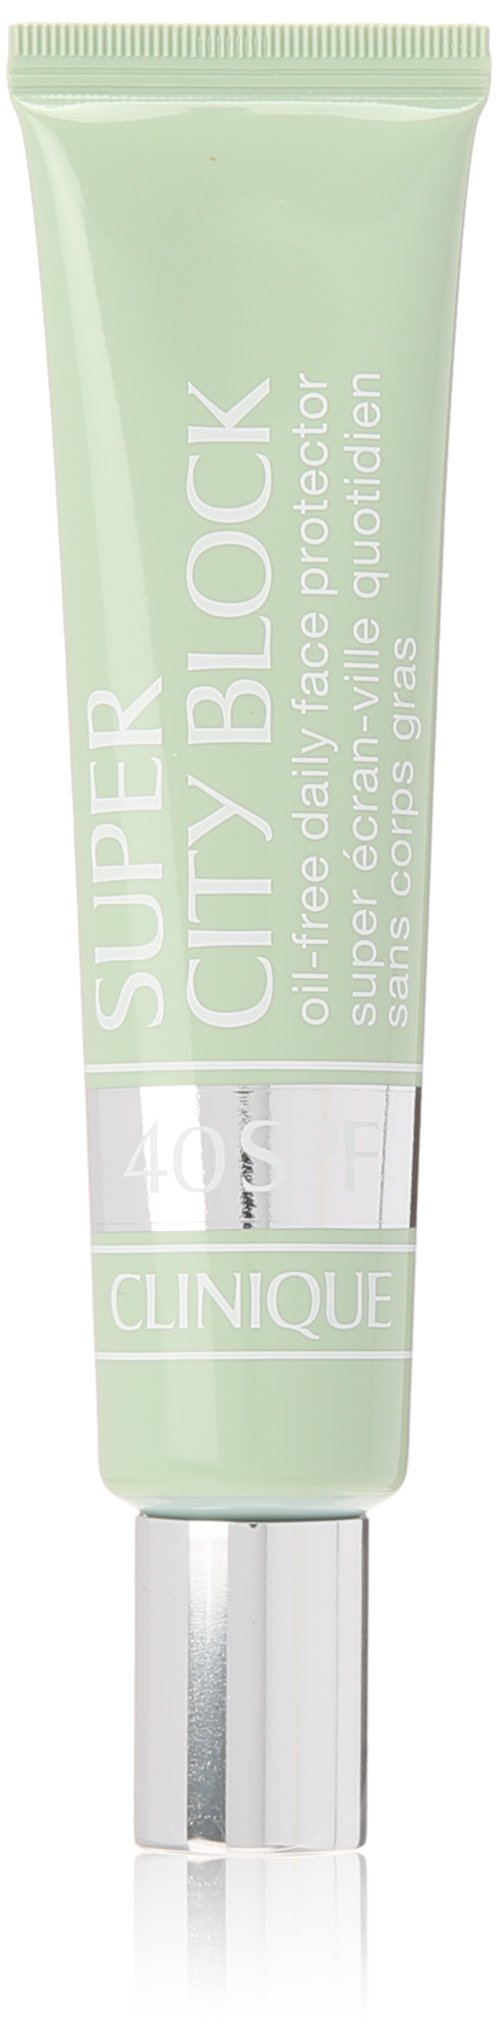 Clinique Super City Block, Oil-Free Daily Face and Skin Protector and Moisturizer, Broad Spectrum SPF 40 UVA/UVB Sun-Blocking Ingredients, Free of Parabens, Phthalates, and Sulfates, 1.4 Fl Oz by Clinique